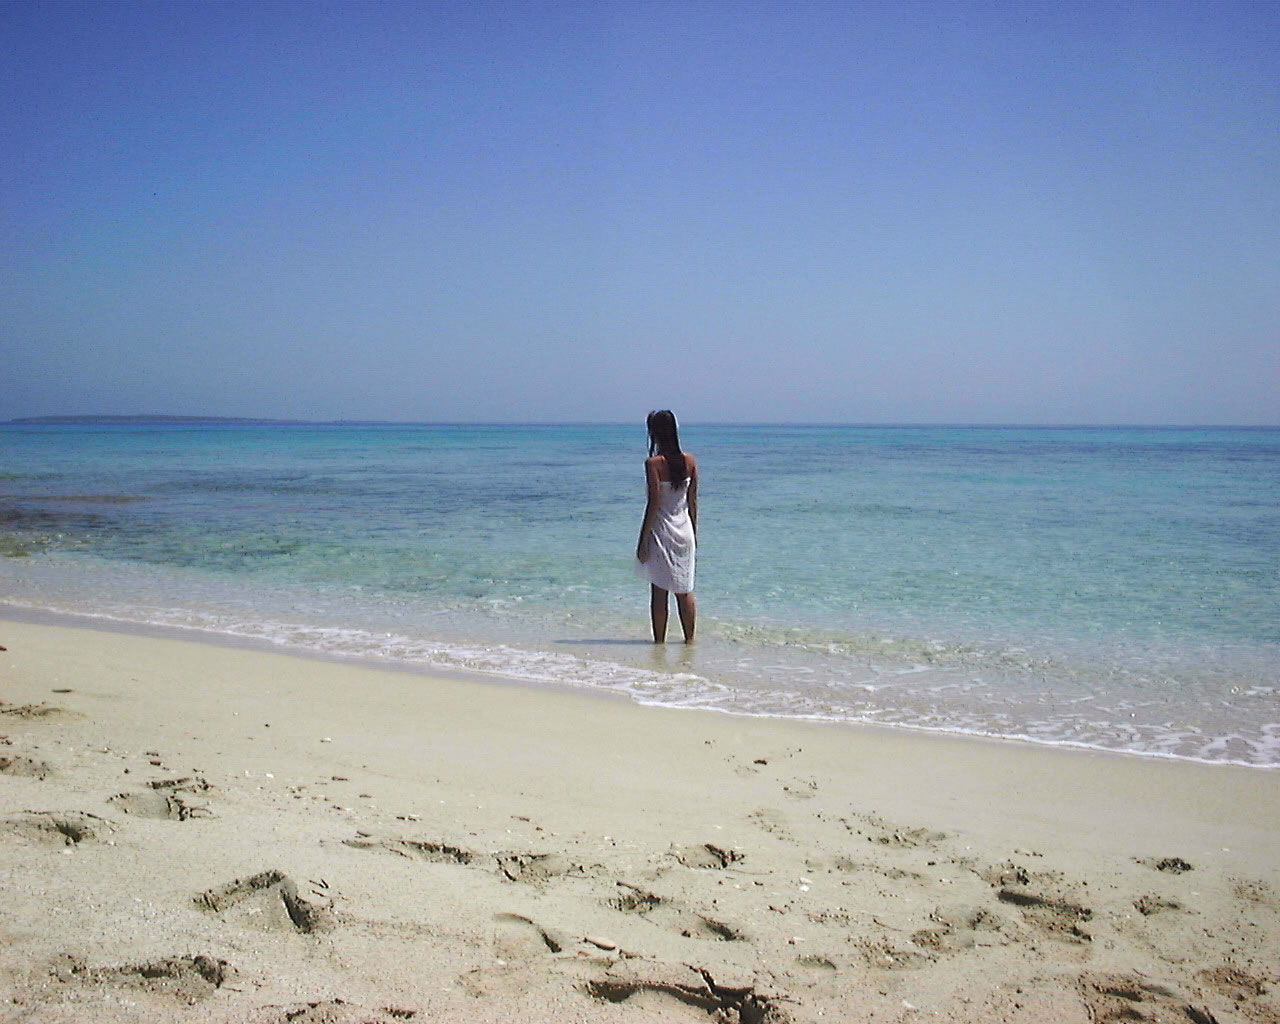 The island of Formentara is famed for it's soft white sand